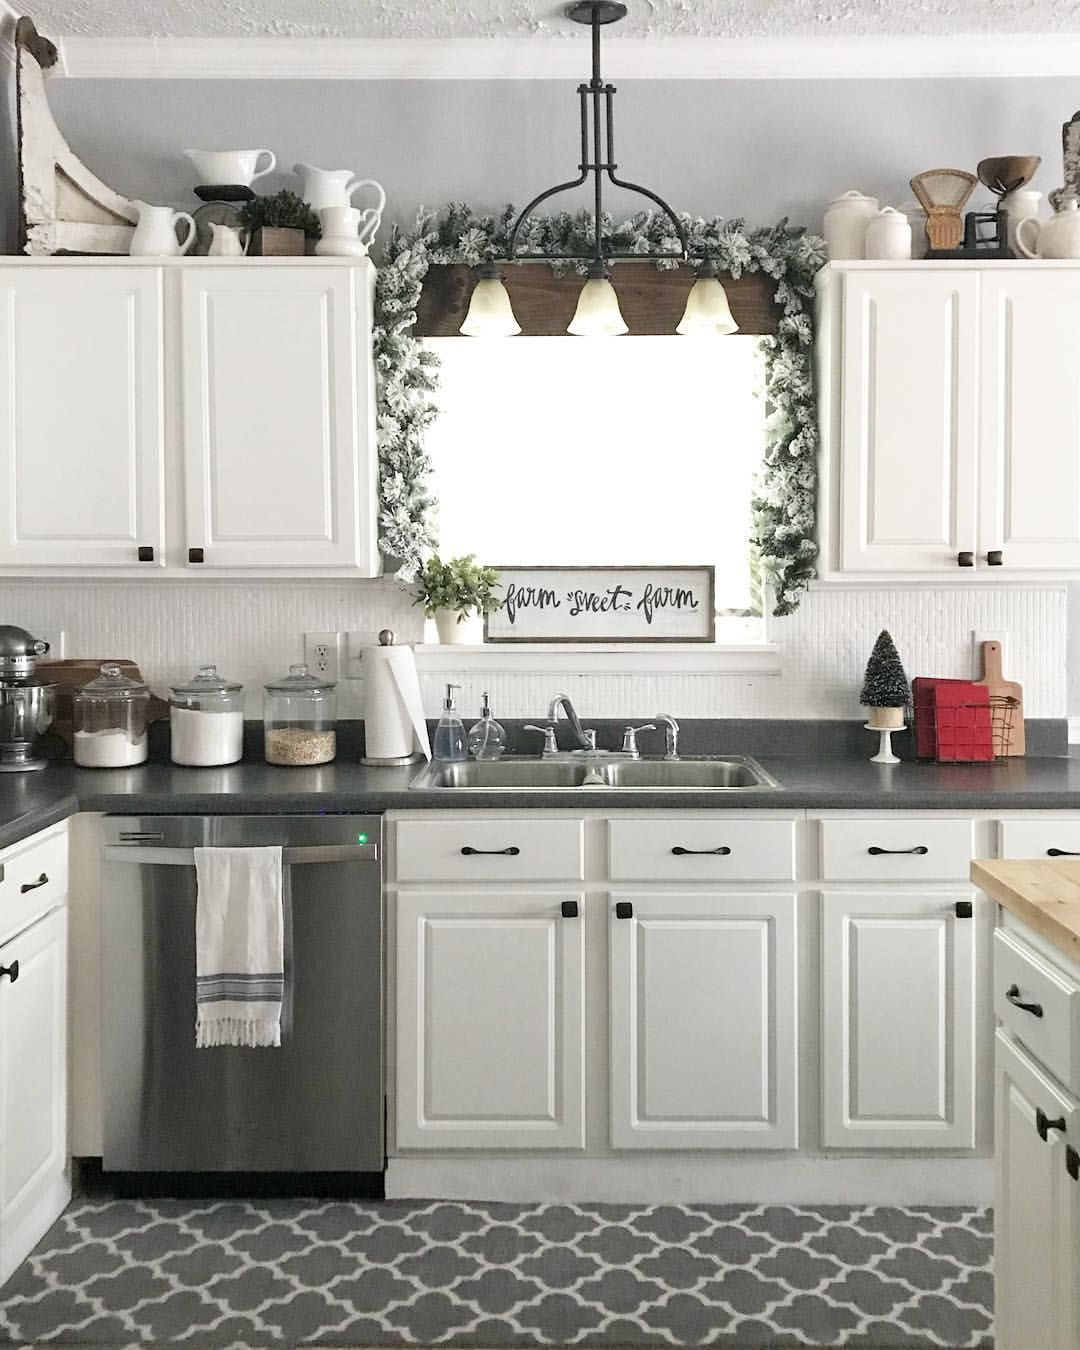 Farmhouse Christmas kitchen white kitchen | Farmhouse ...